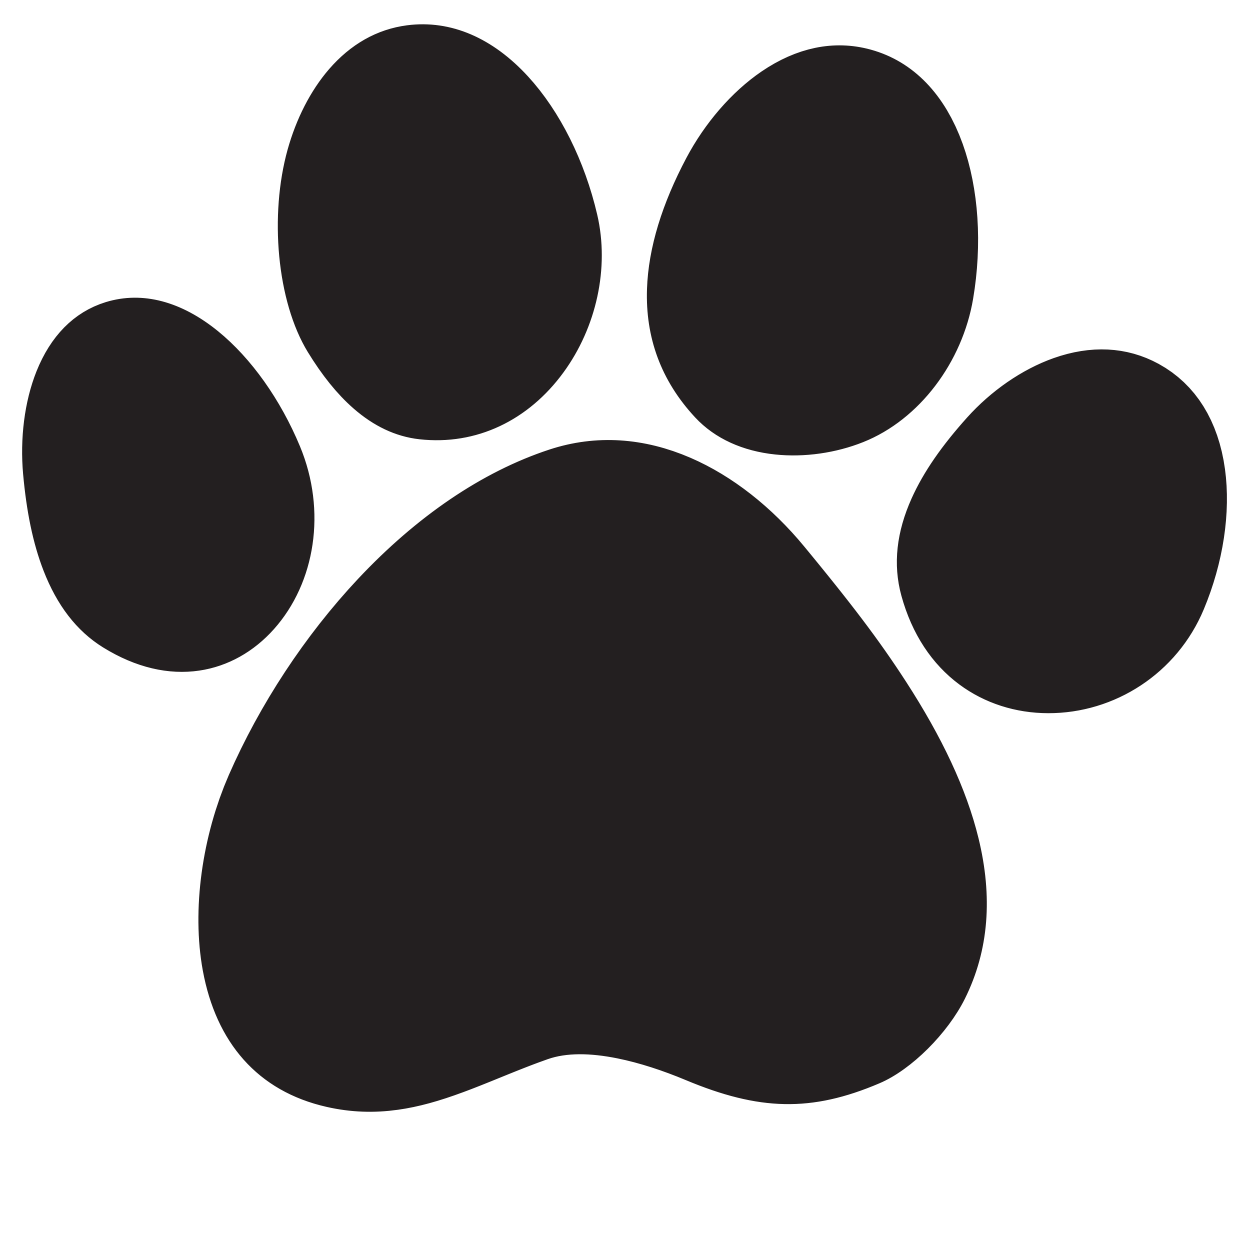 Pin On Images Also fox paw print png available at png transparent variant. pinterest